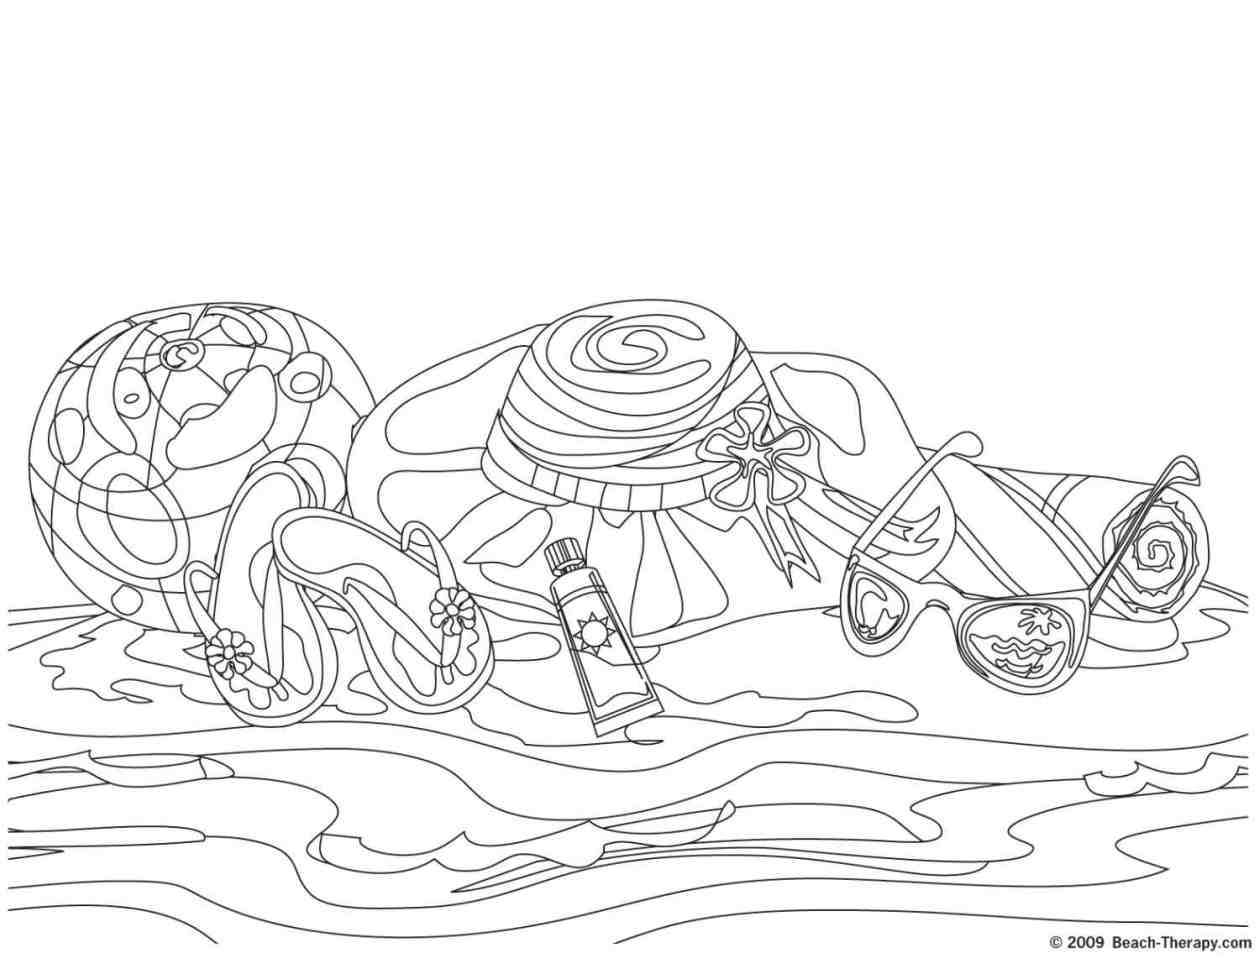 Free coloring pages of the seaside